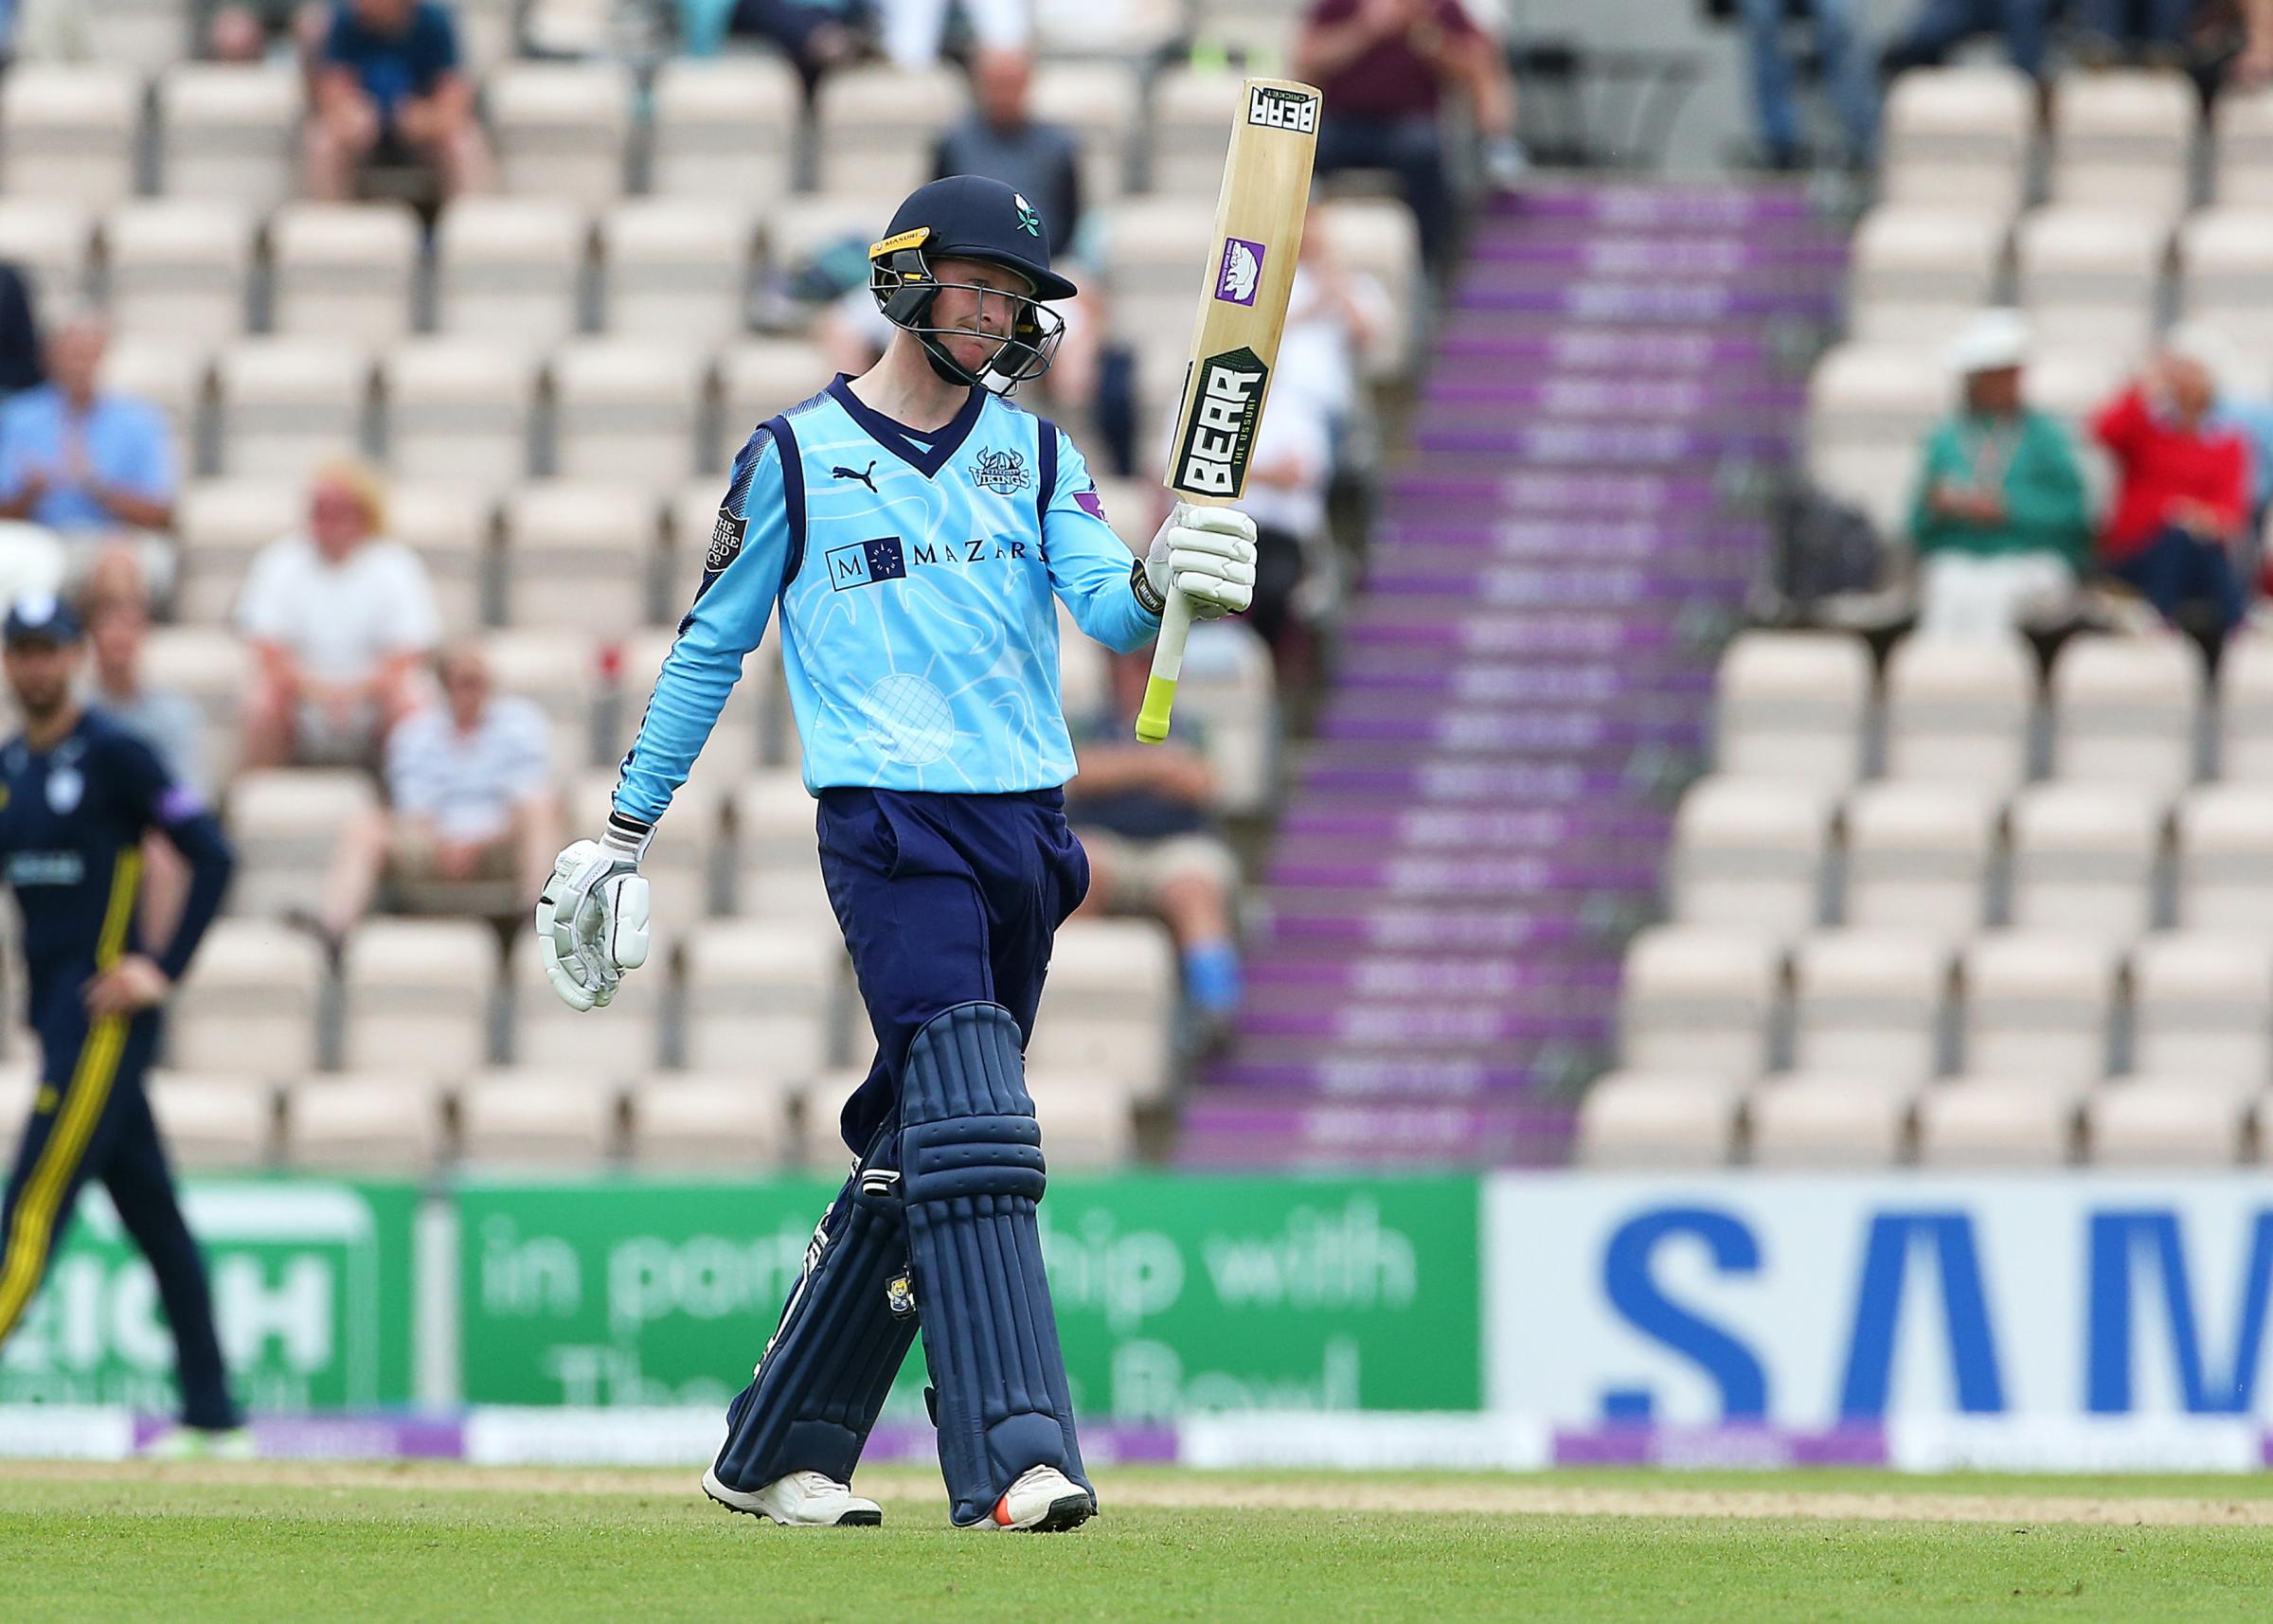 Yorkshire's Jonathan Tattersall raises his bat after reaching his half century during the Royal London One Day Cup, semi final at The Ageas Bowl, Southampton. PRESS ASSOCIATION Photo. Picture date: Monday June 18, 2018. See PA story CRICKET Hampshire.